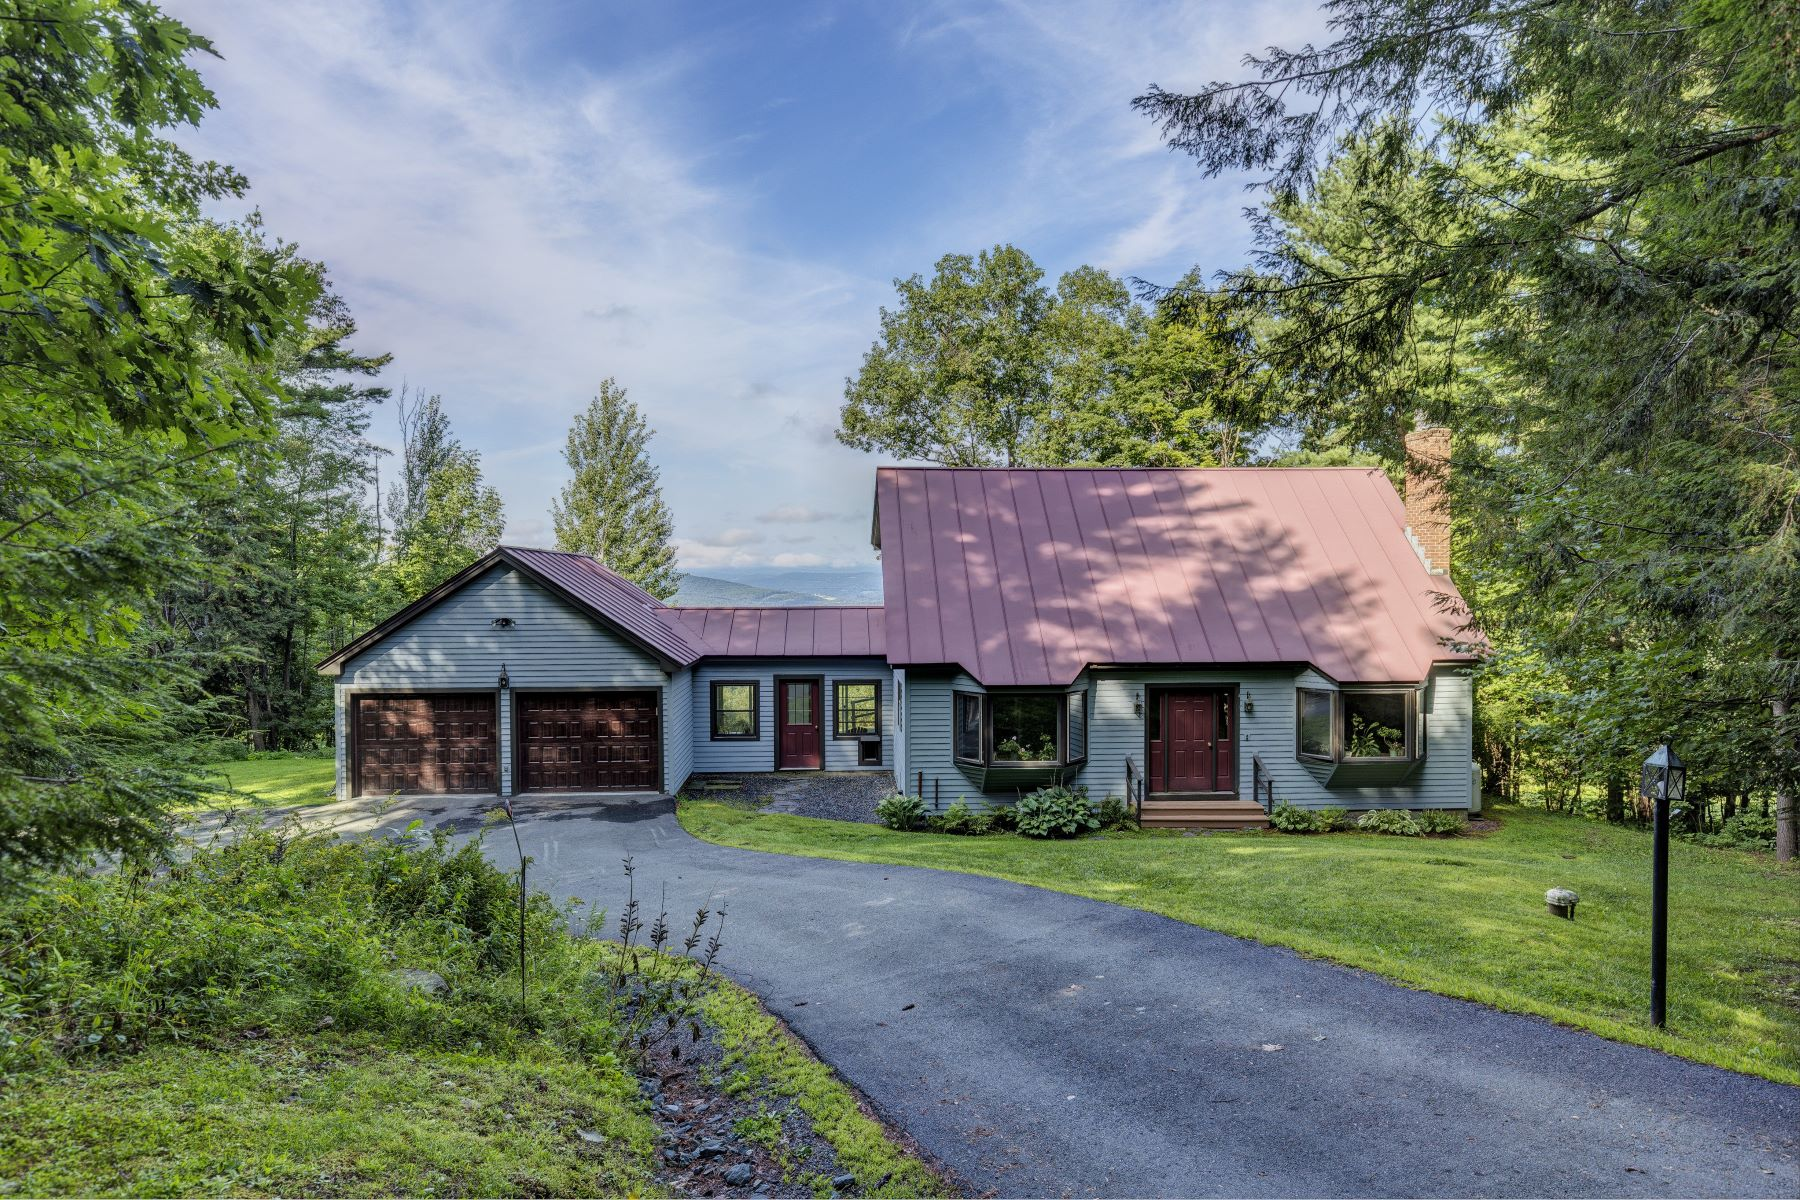 Single Family Home for Sale at Three Bedroom Cape in Lebanon with Views 14 Dorset Ln Lebanon, New Hampshire 03766 United States